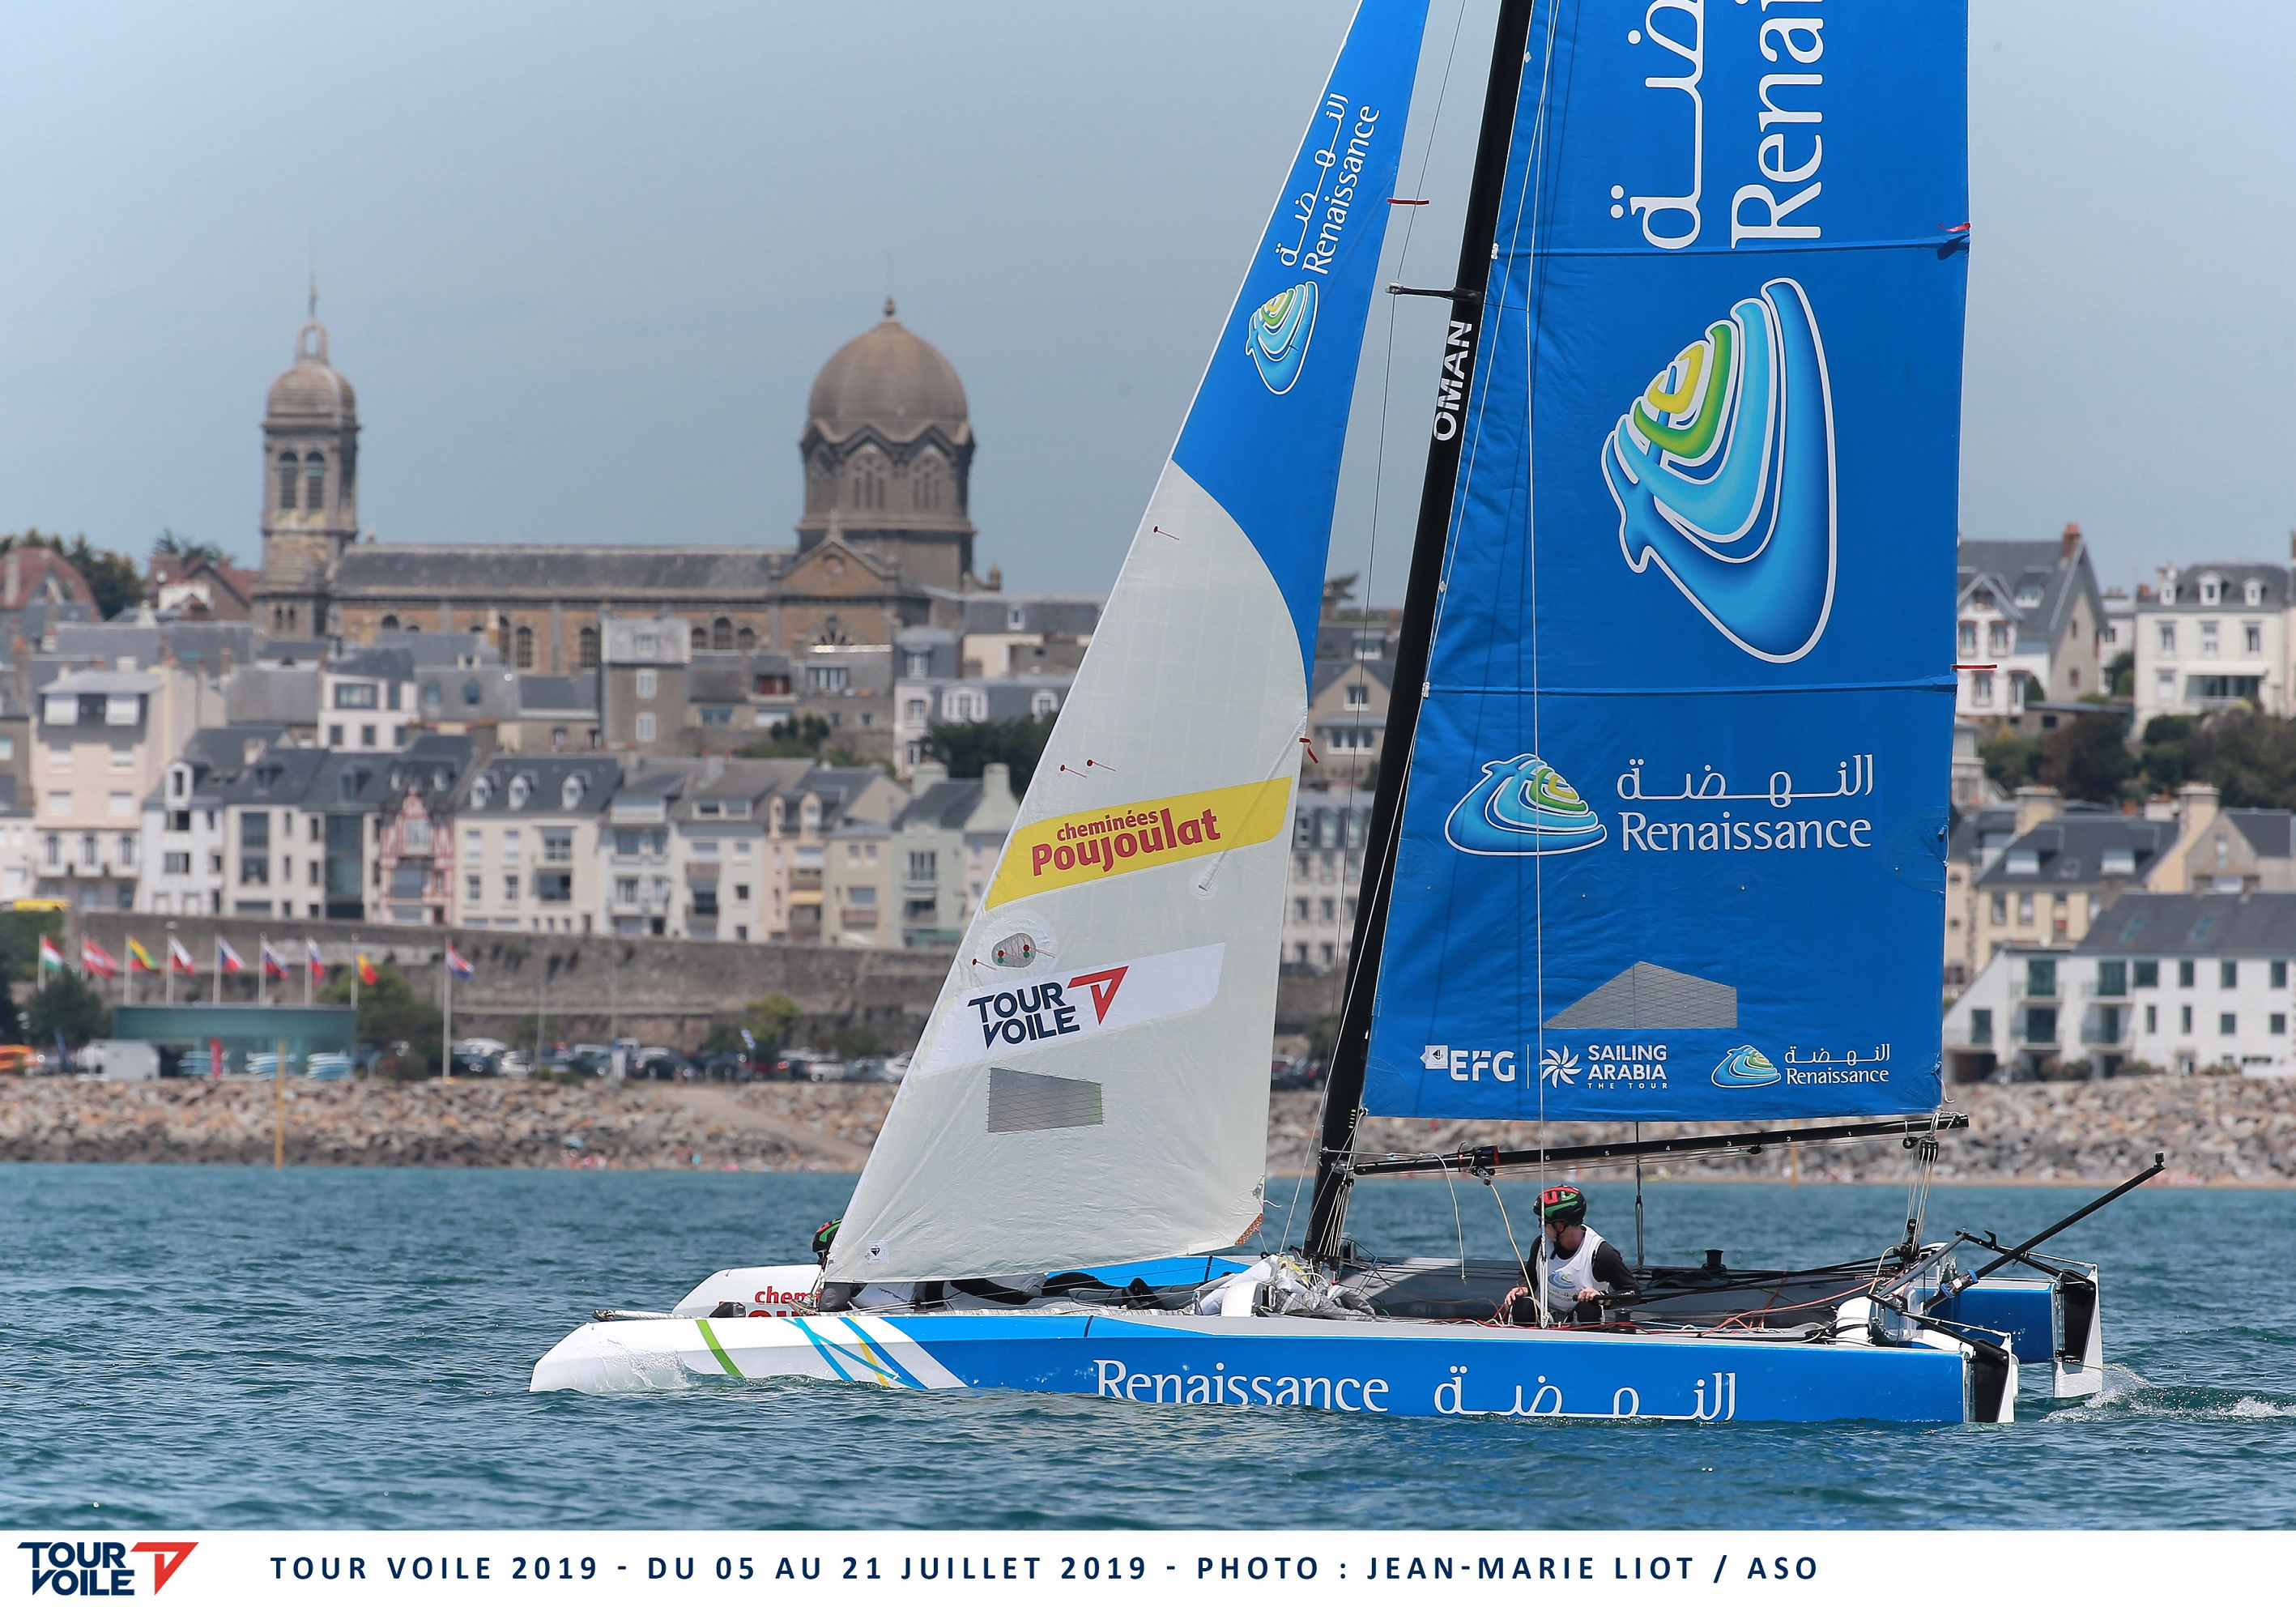 All to play for as Oman Sail teams reach mid-point of Tour Voile